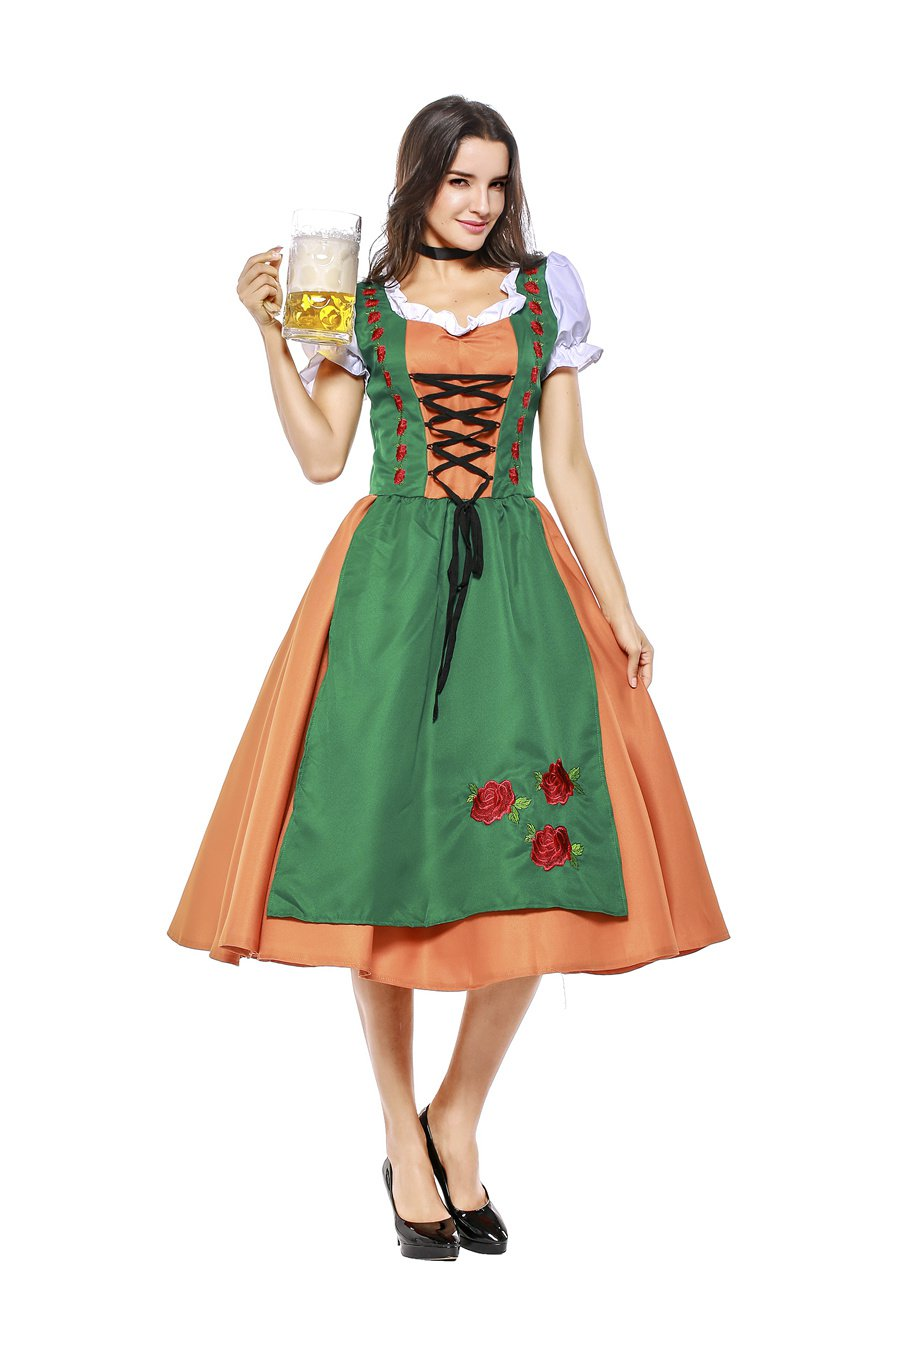 Bar Waitress Uniform Oktoberfest Costume Plus Size XL Carnival Beer Girl Fancy Dresses